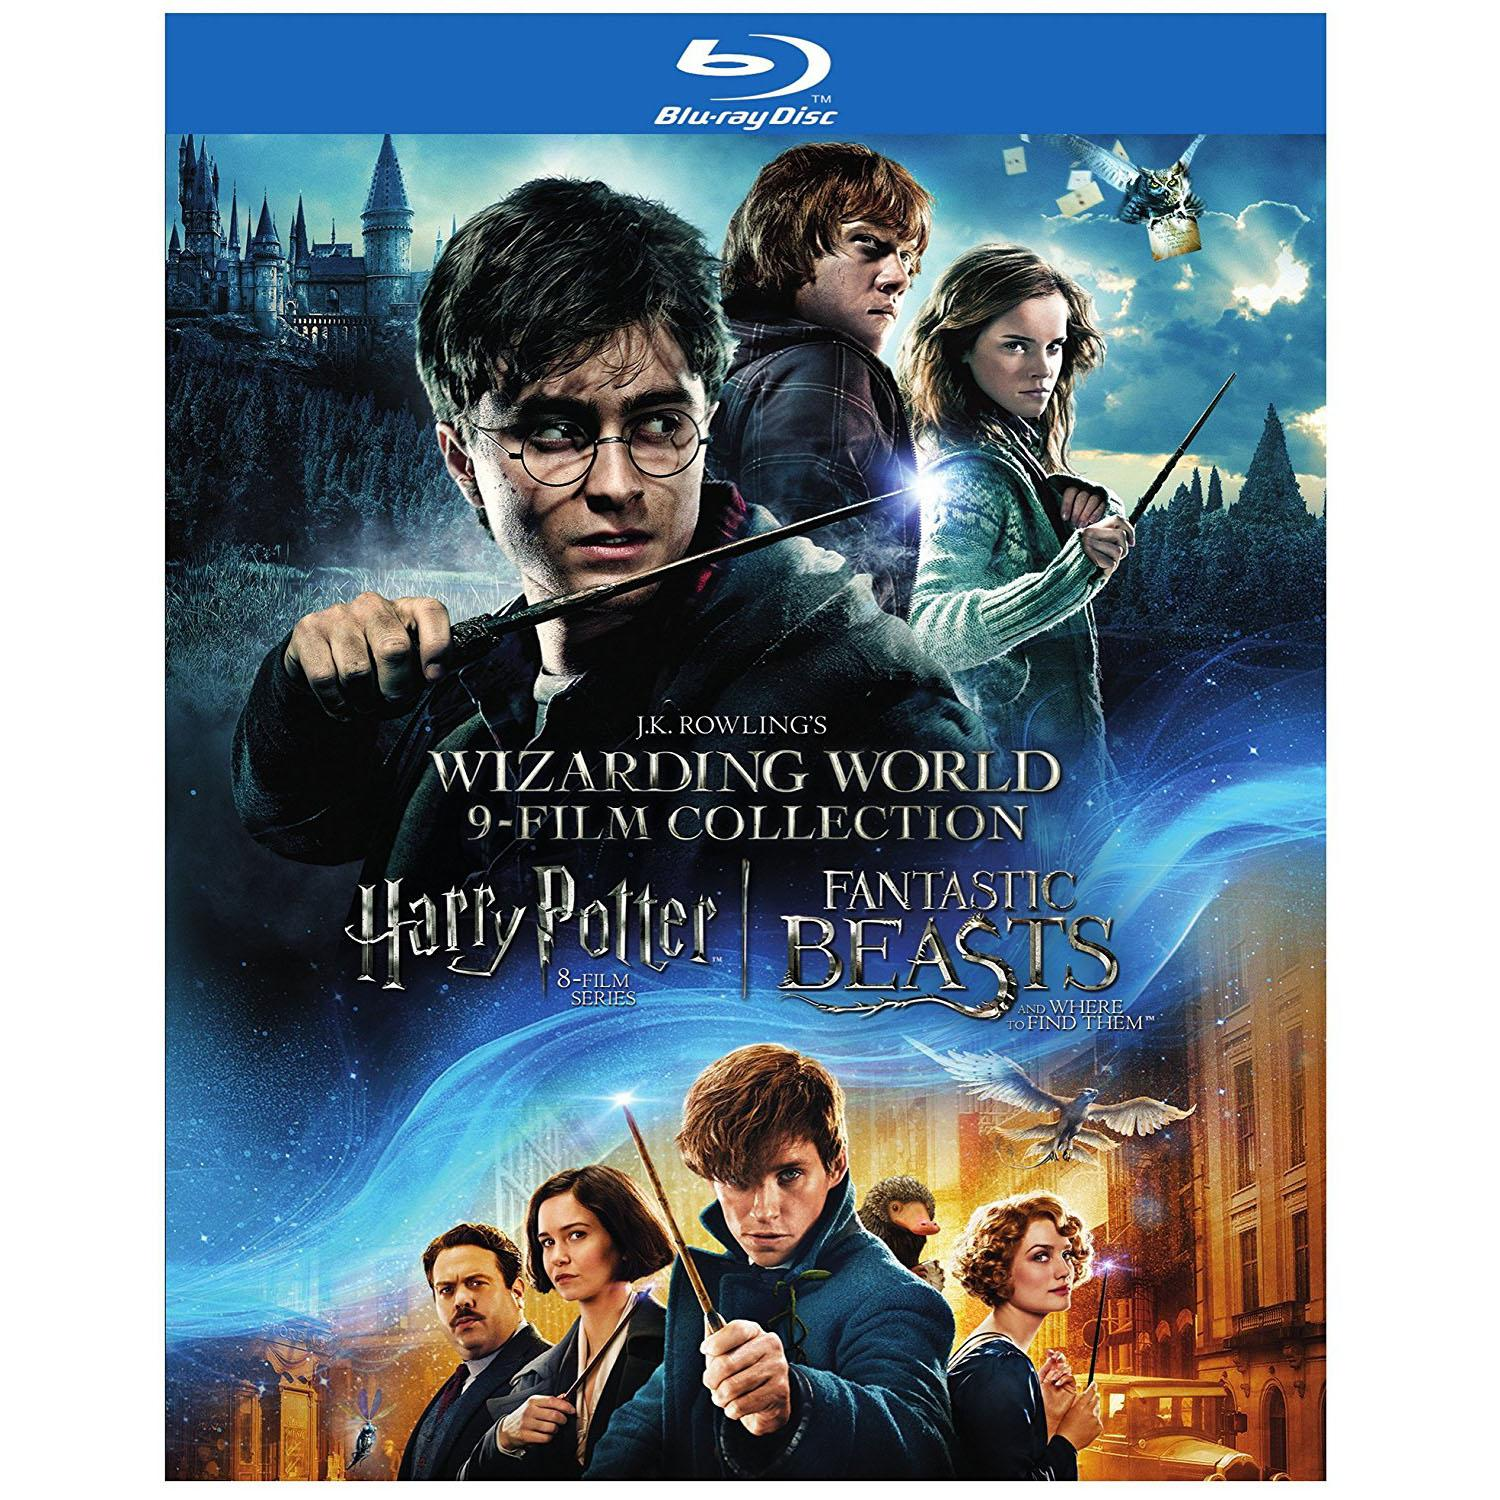 Wizarding World 9-Film Collection Special Edition Blu-ray